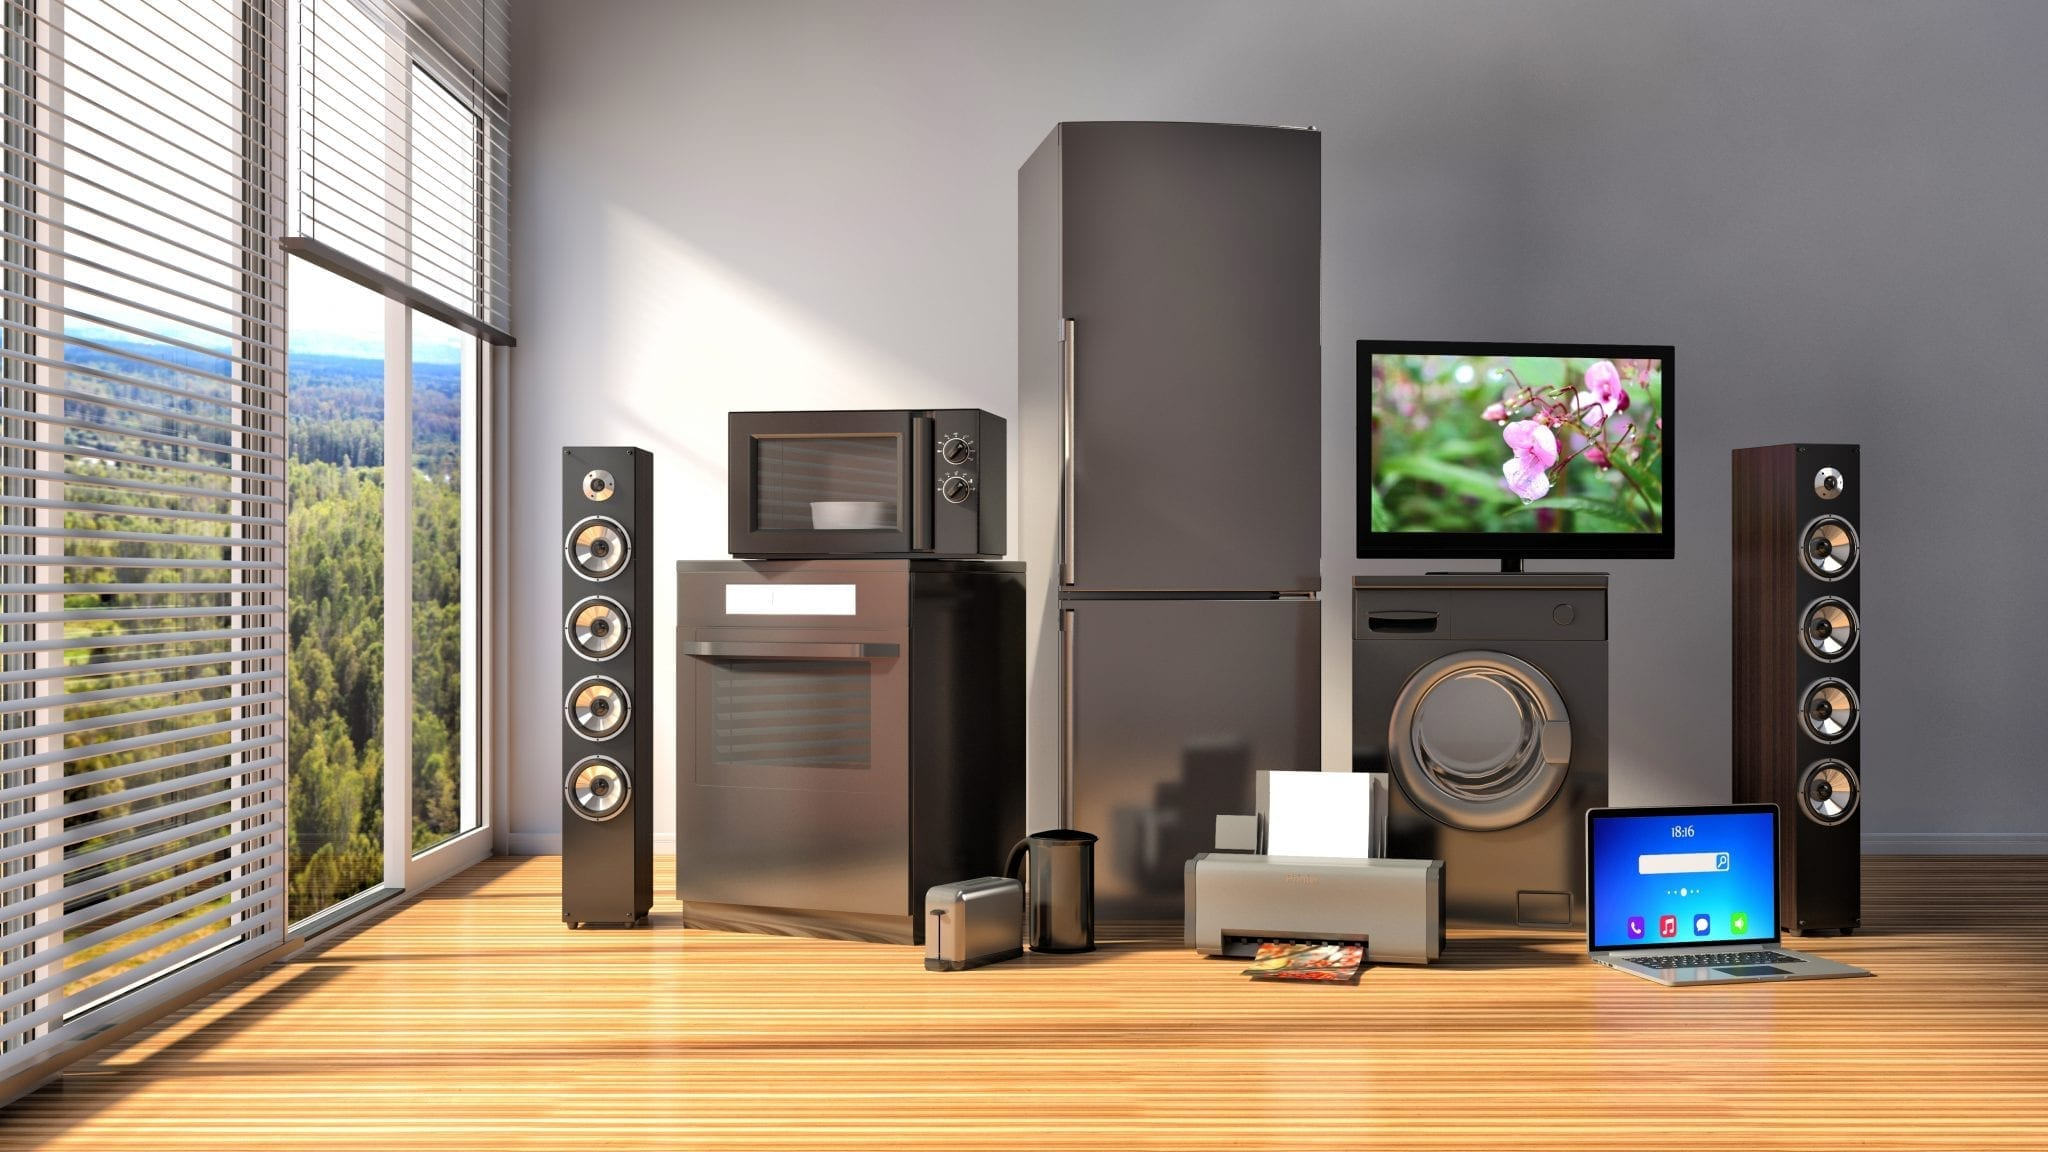 In Home Electronics Jc Penney To Stop Selling Home Appliances Retail News Asia